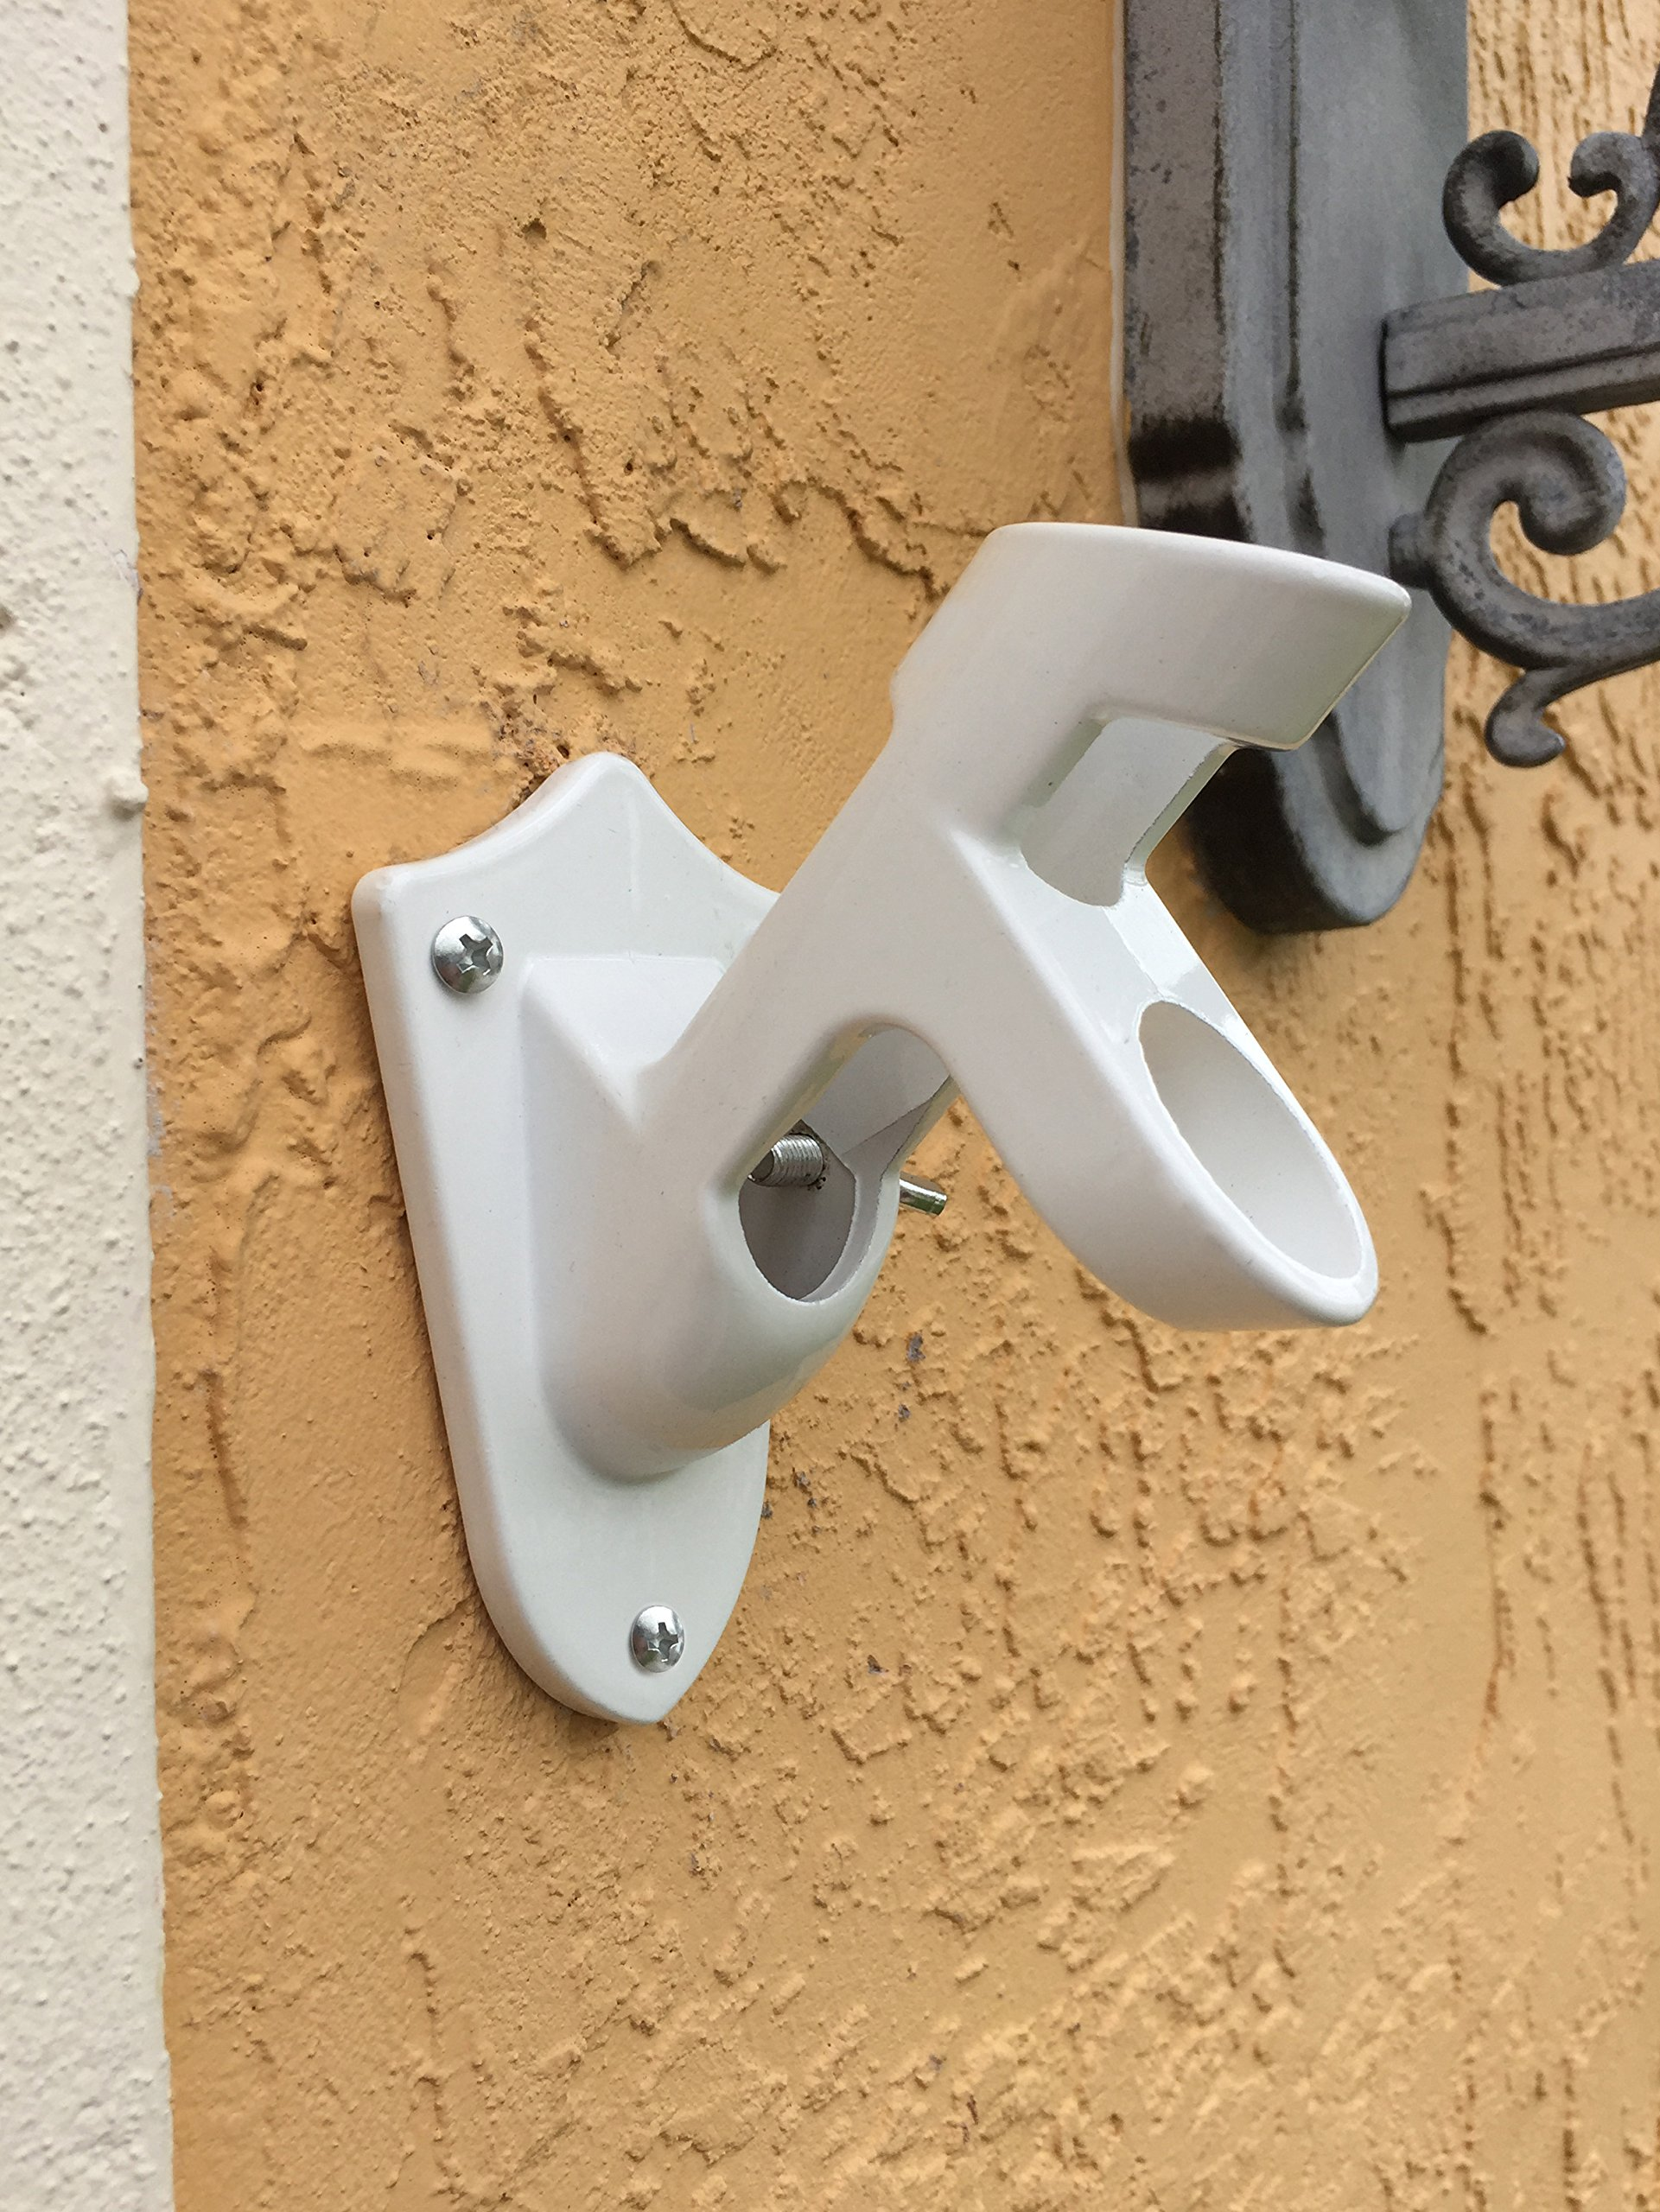 Green Grove Products Aluminum Flag Pole Bracket Mount 2 Positions - White by Green Grove Products (Image #4)